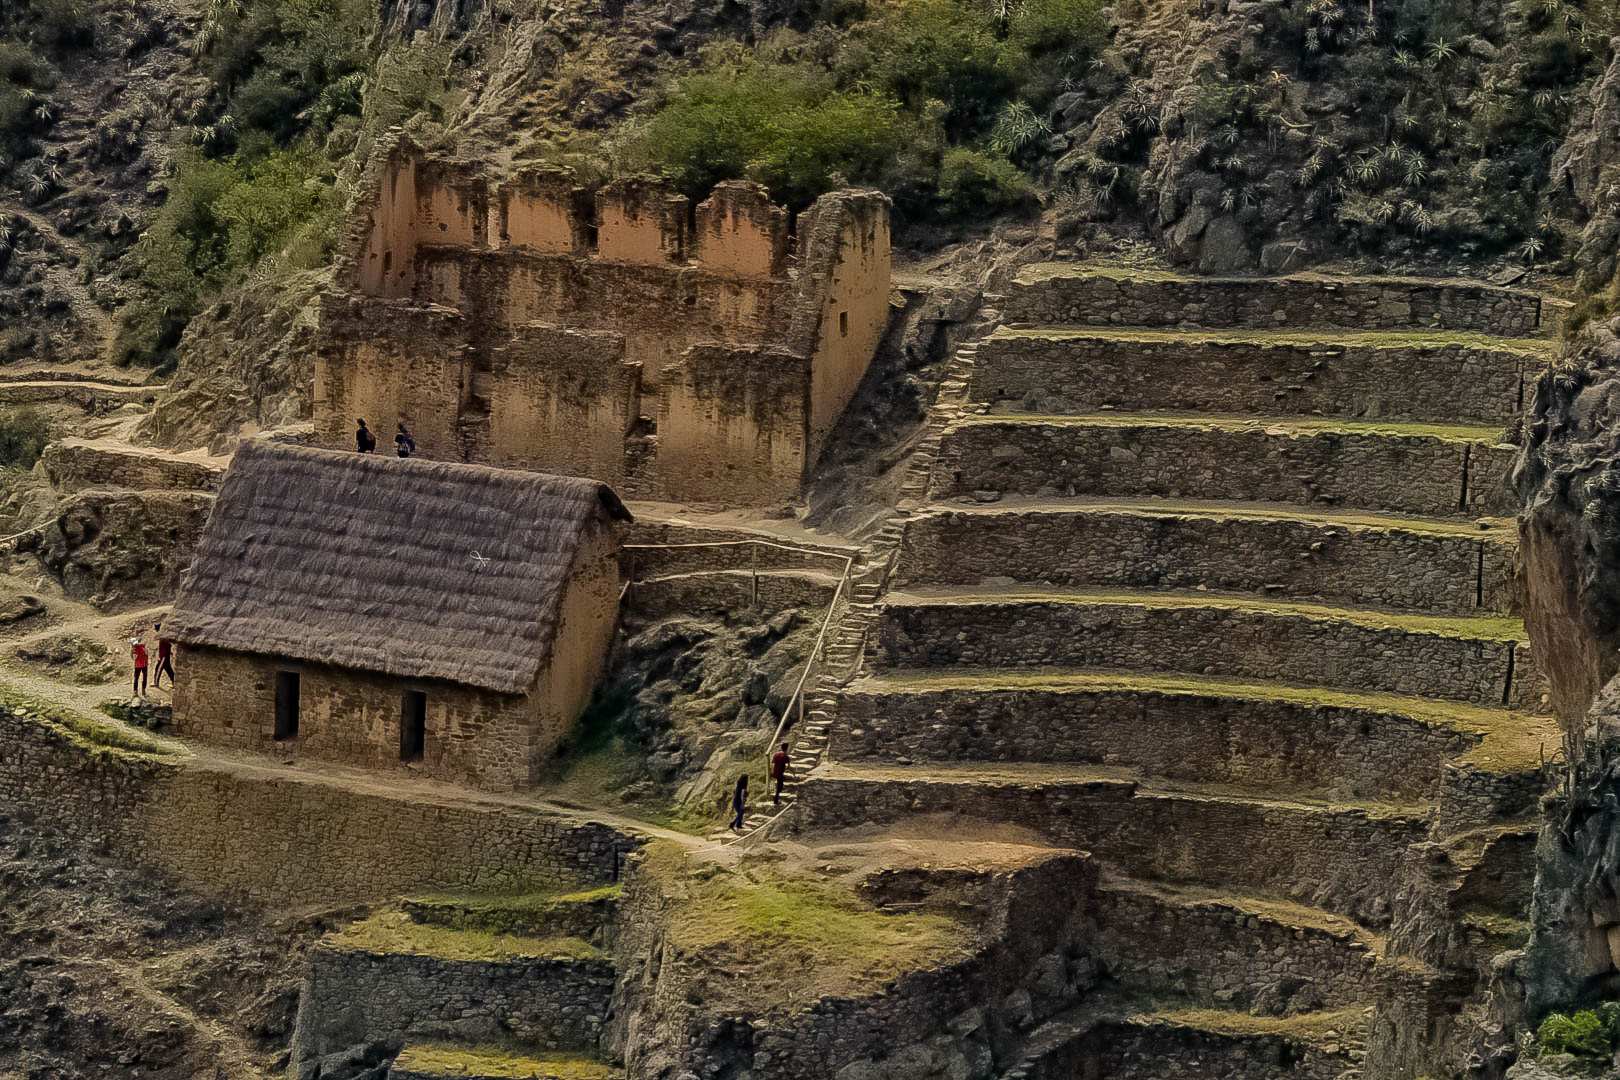 The Sacred Valley and Ollantaytambo